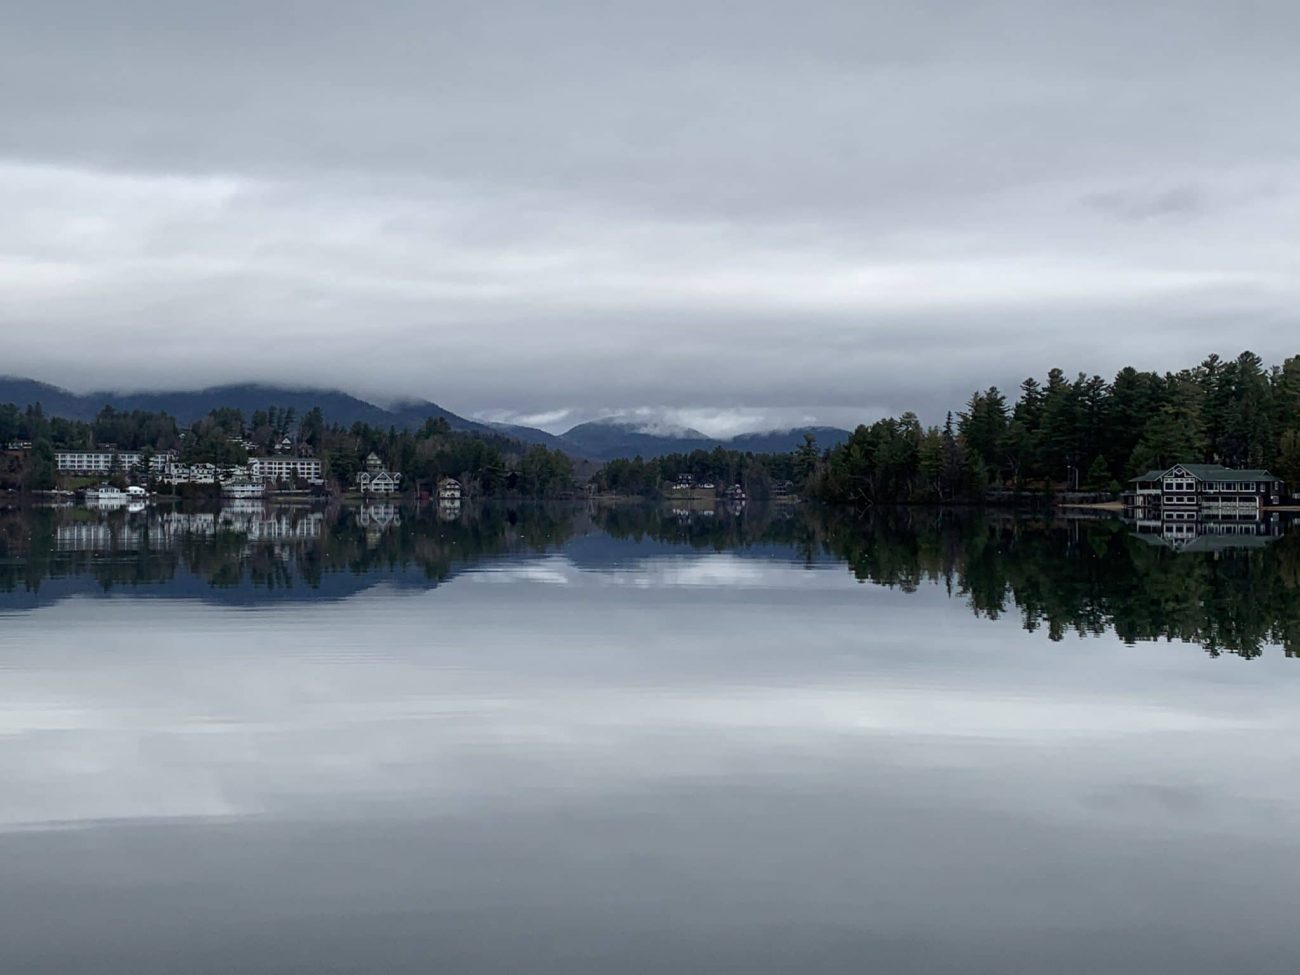 Wintry Legends in Lake Placid